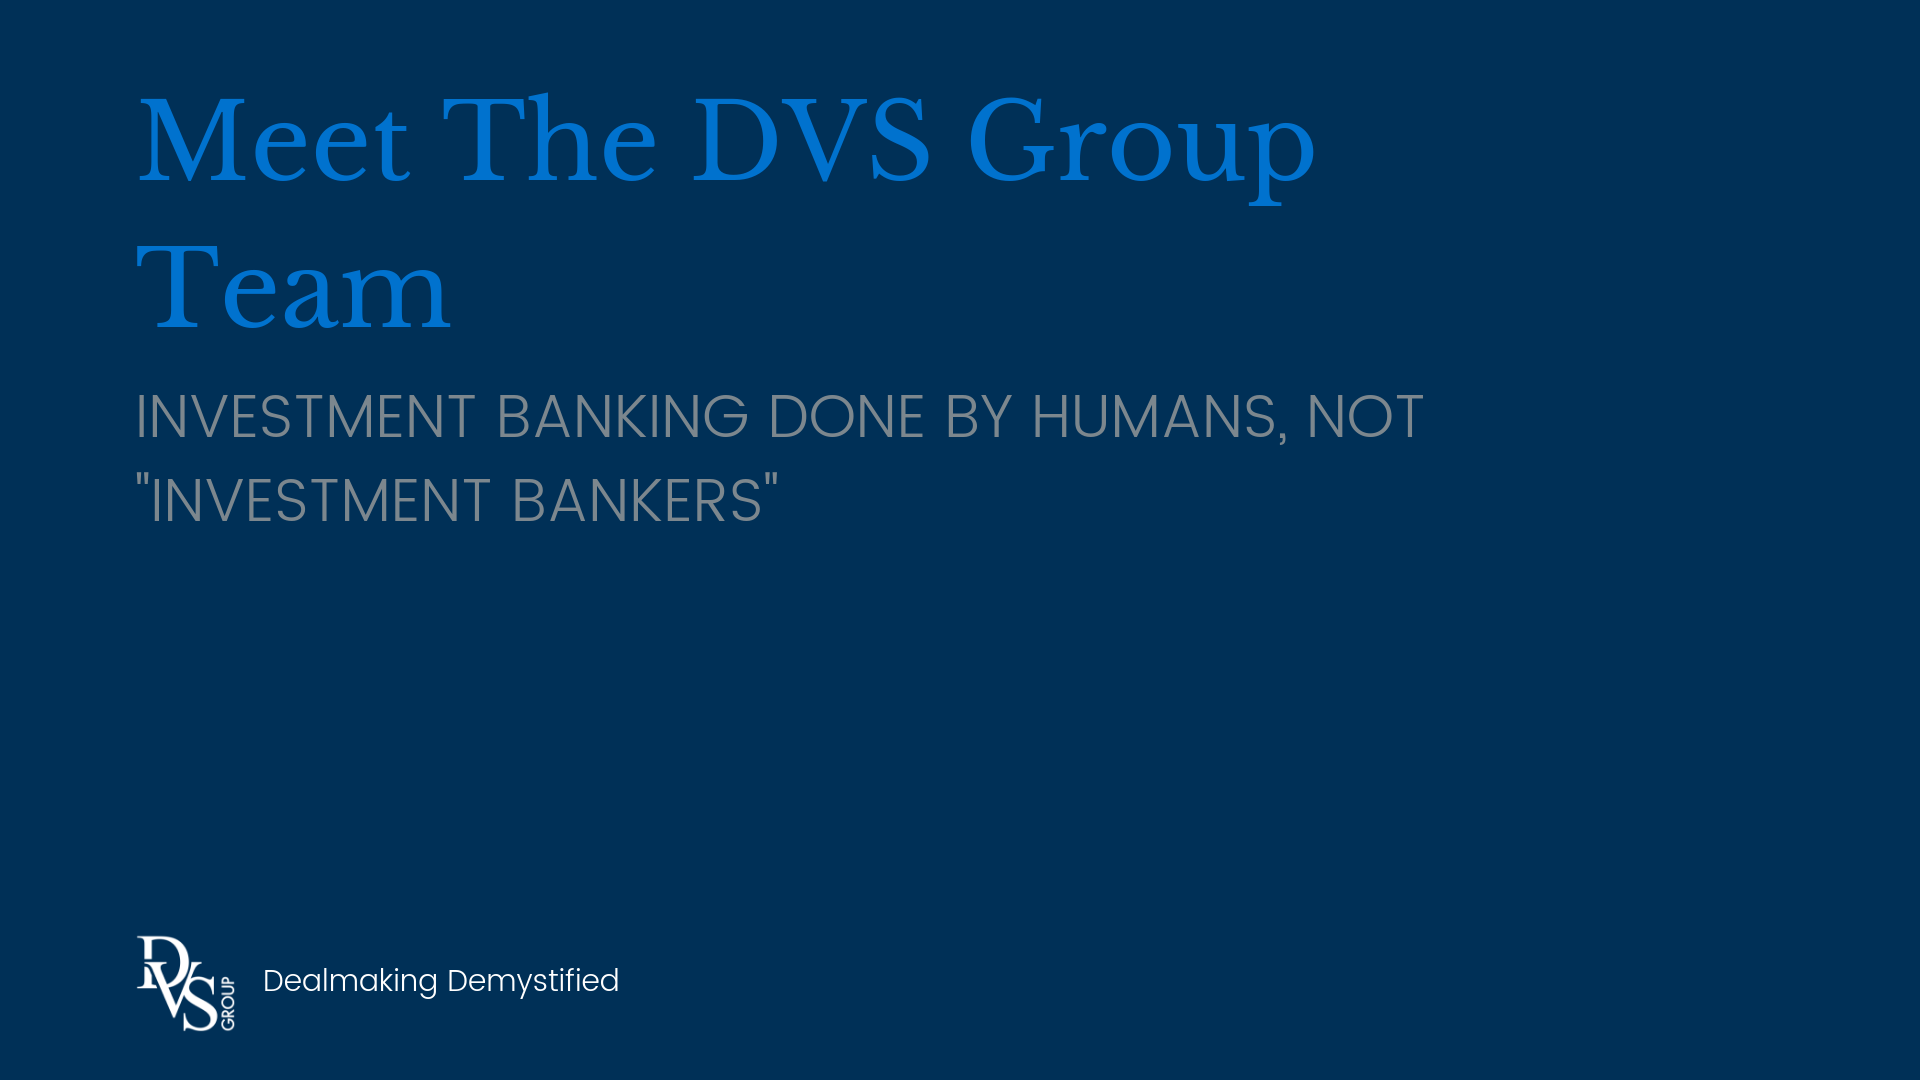 Investment Banking Done by Humans, Not Investment Bankers